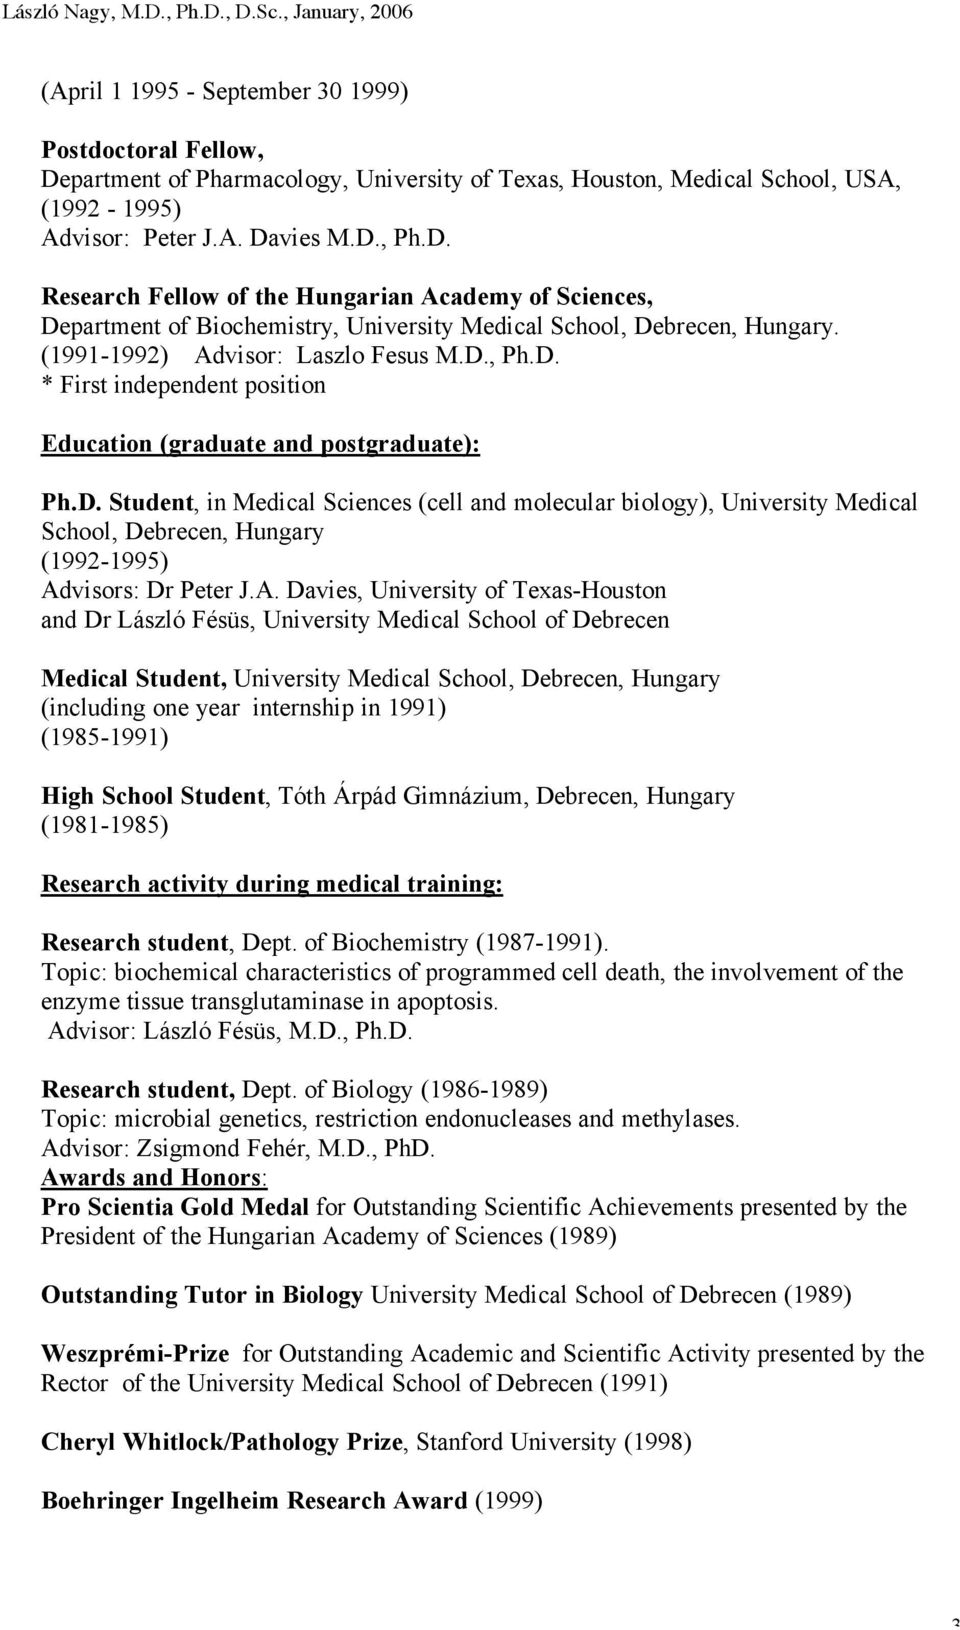 D. Research Fellow of the Hungarian Academy of Sciences, Department of Biochemistry, University Medical School, Debrecen, Hungary. (1991-1992) Advisor: Laszlo Fesus M.D., Ph.D. * First independent position Education (graduate and postgraduate): Ph.